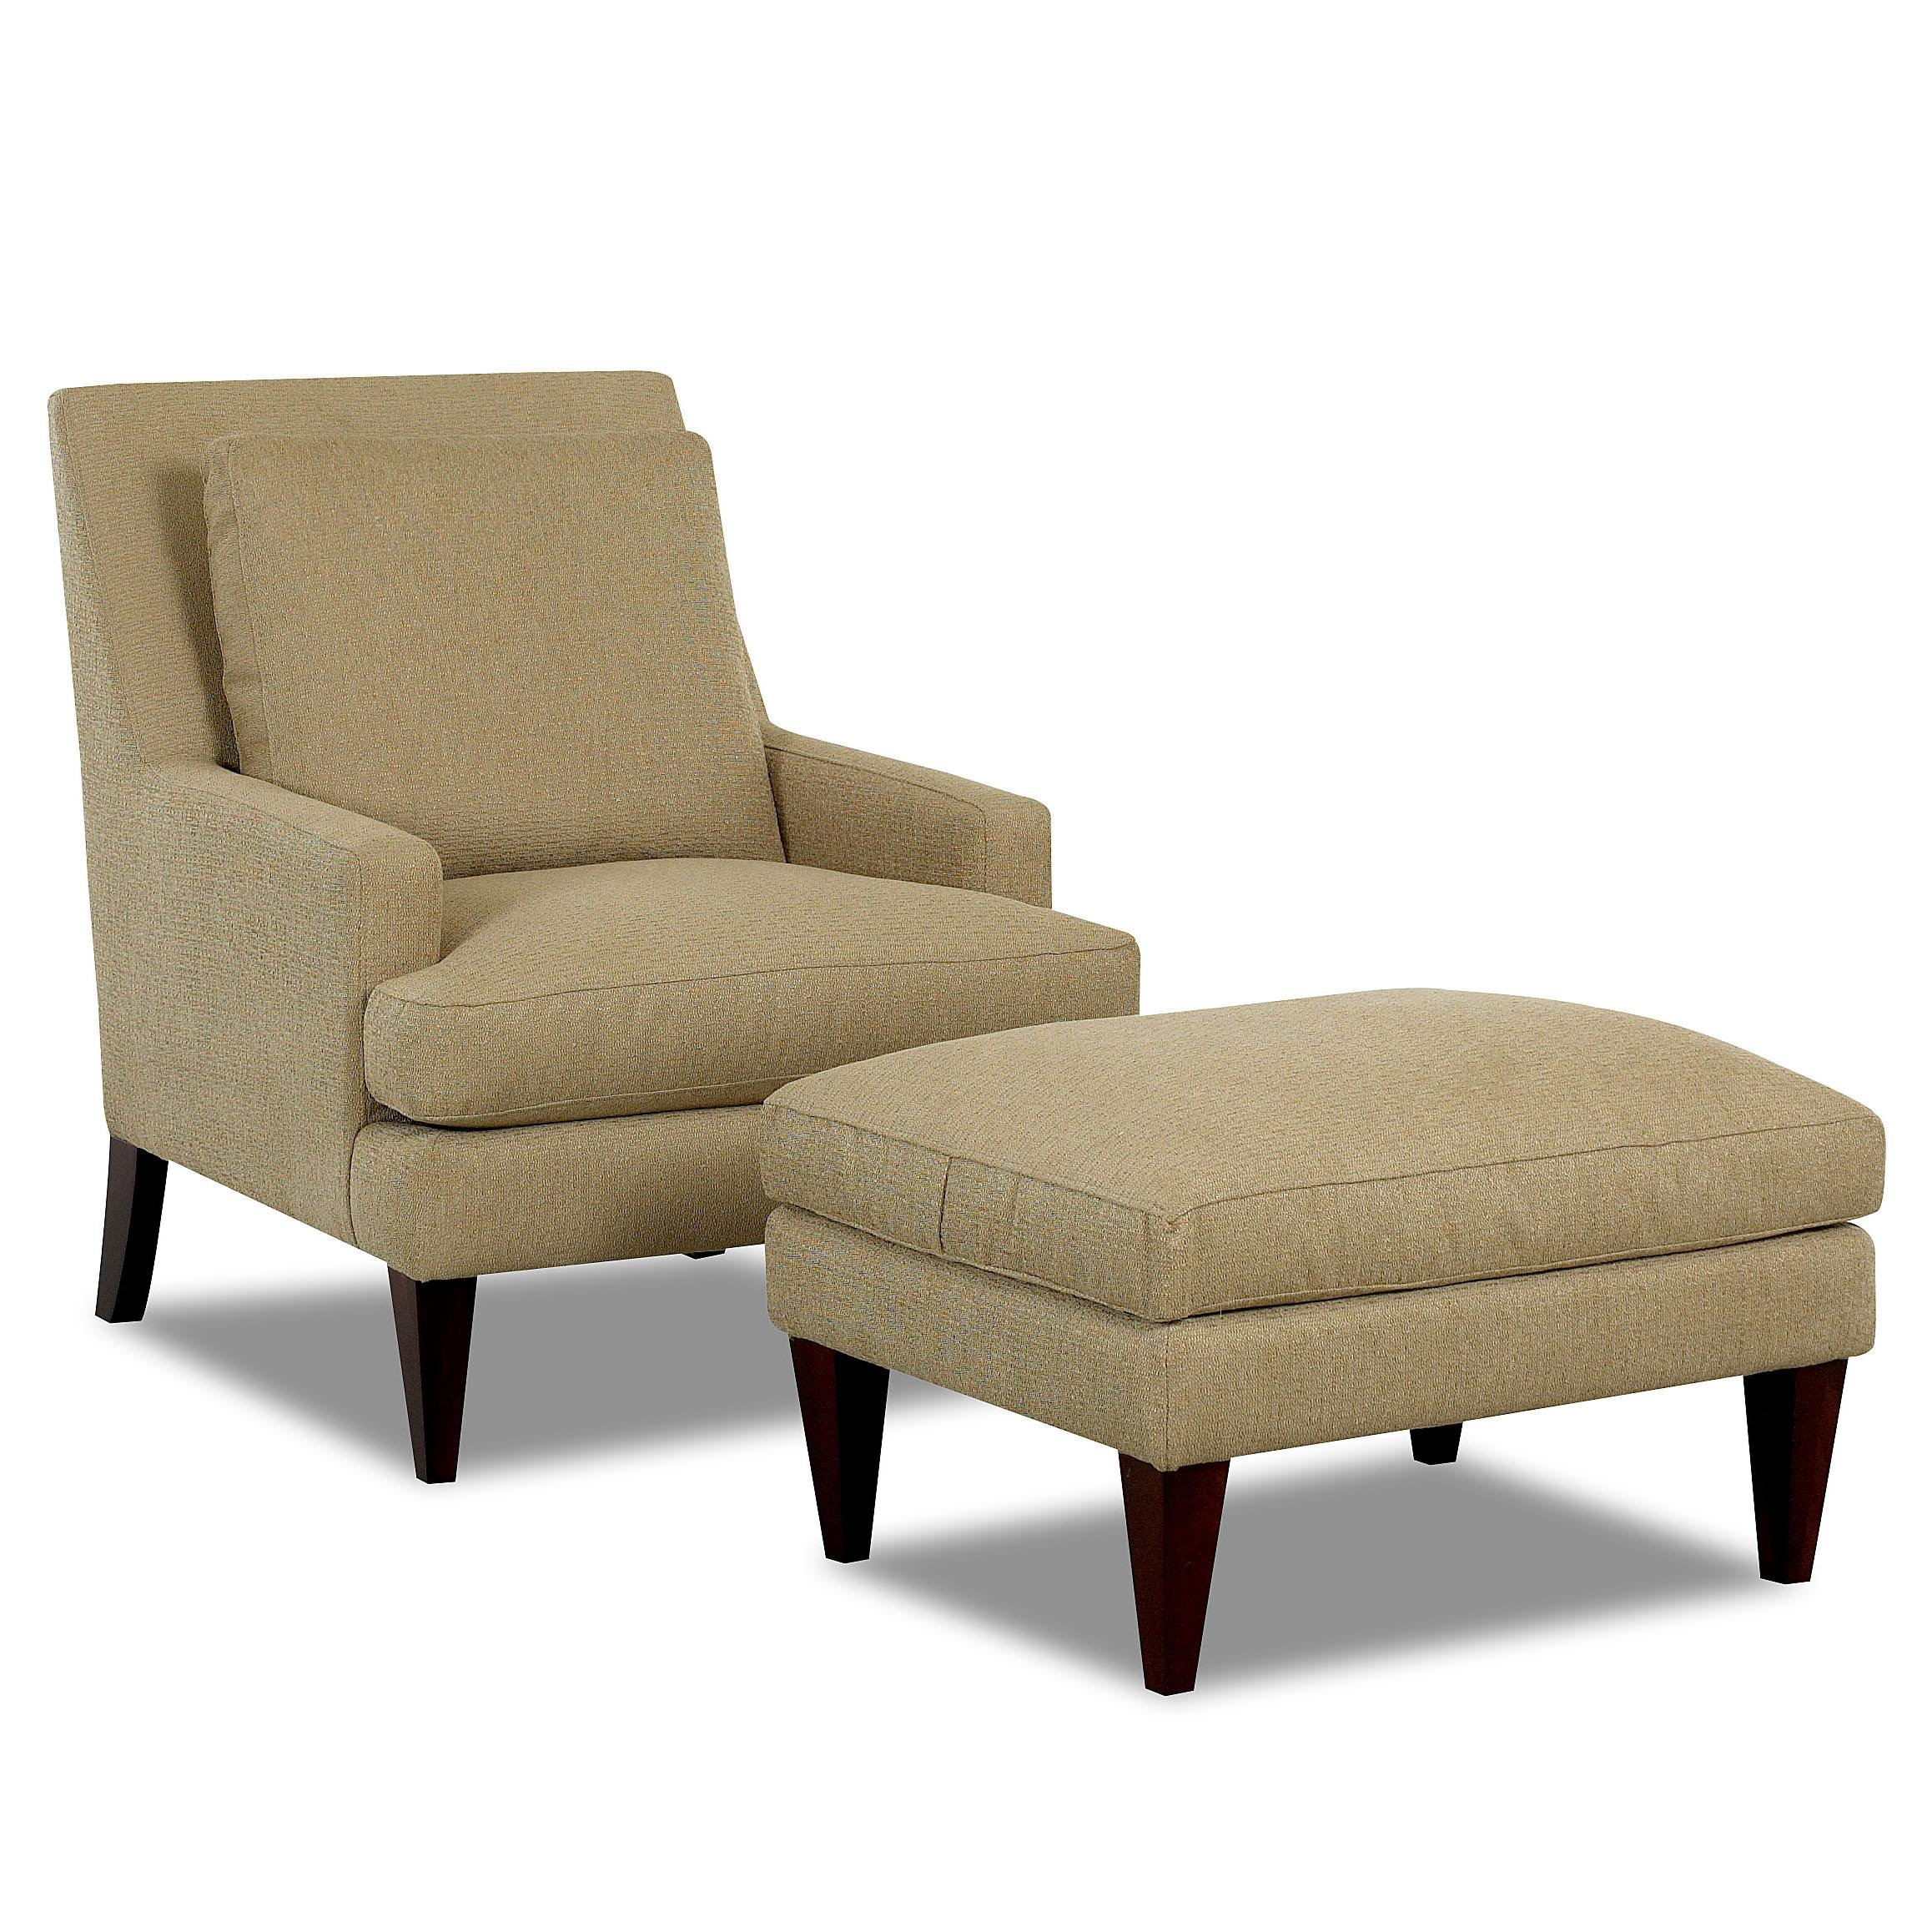 Townsend Chair and Ottoman Set